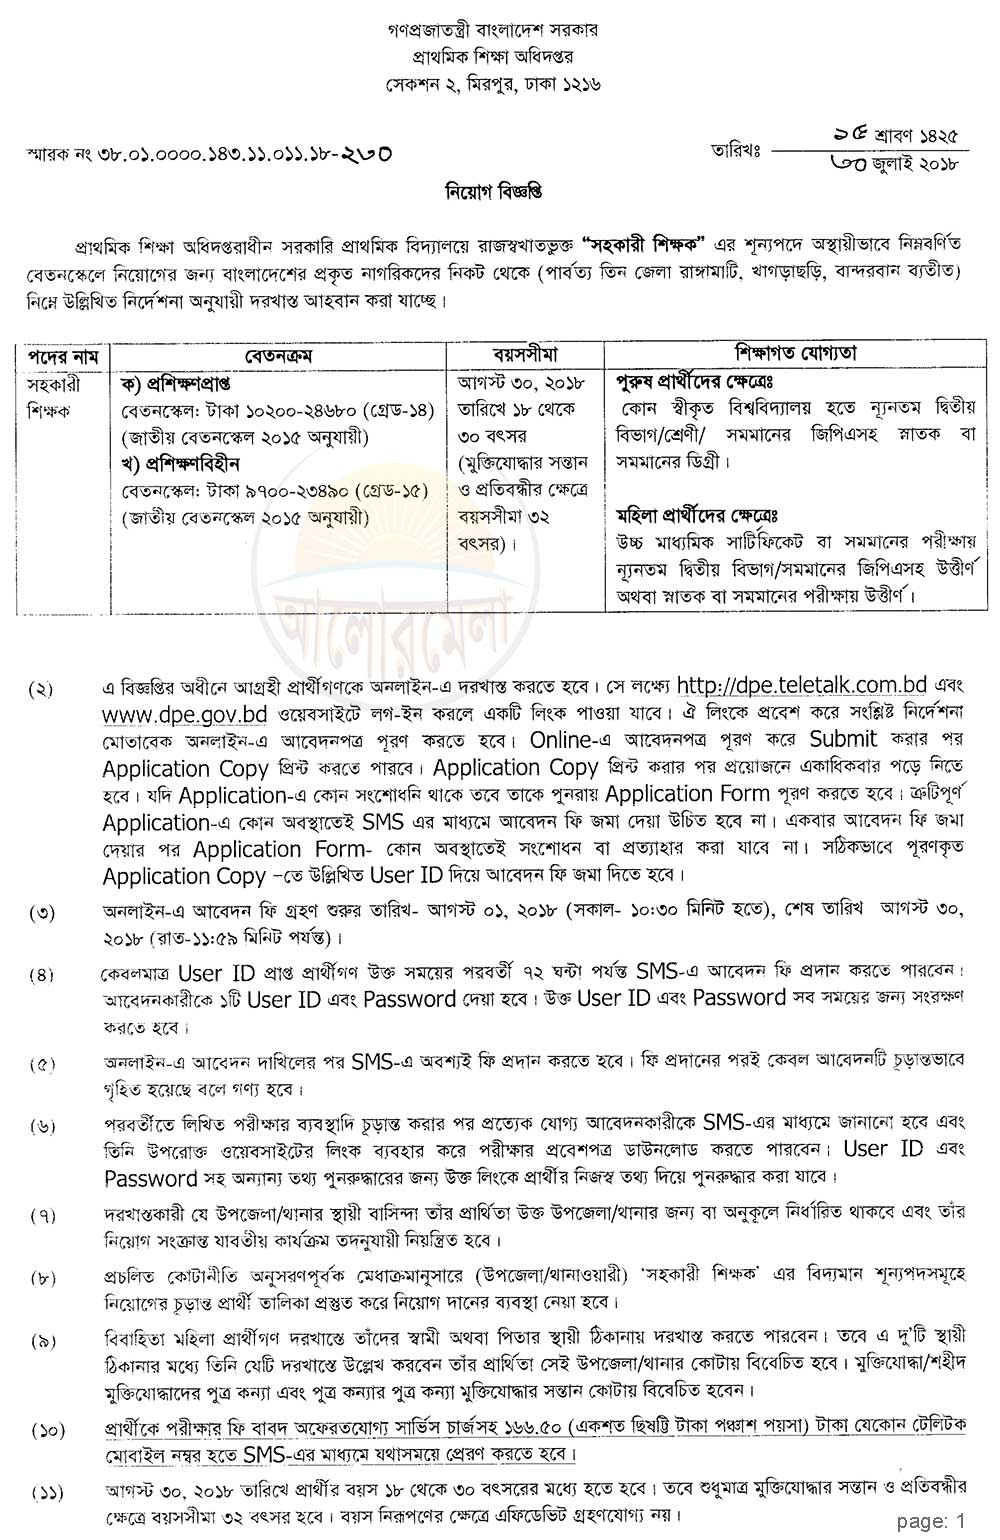 Primary School Asst  Teacher Recruitment 2018 | dpe gov bd